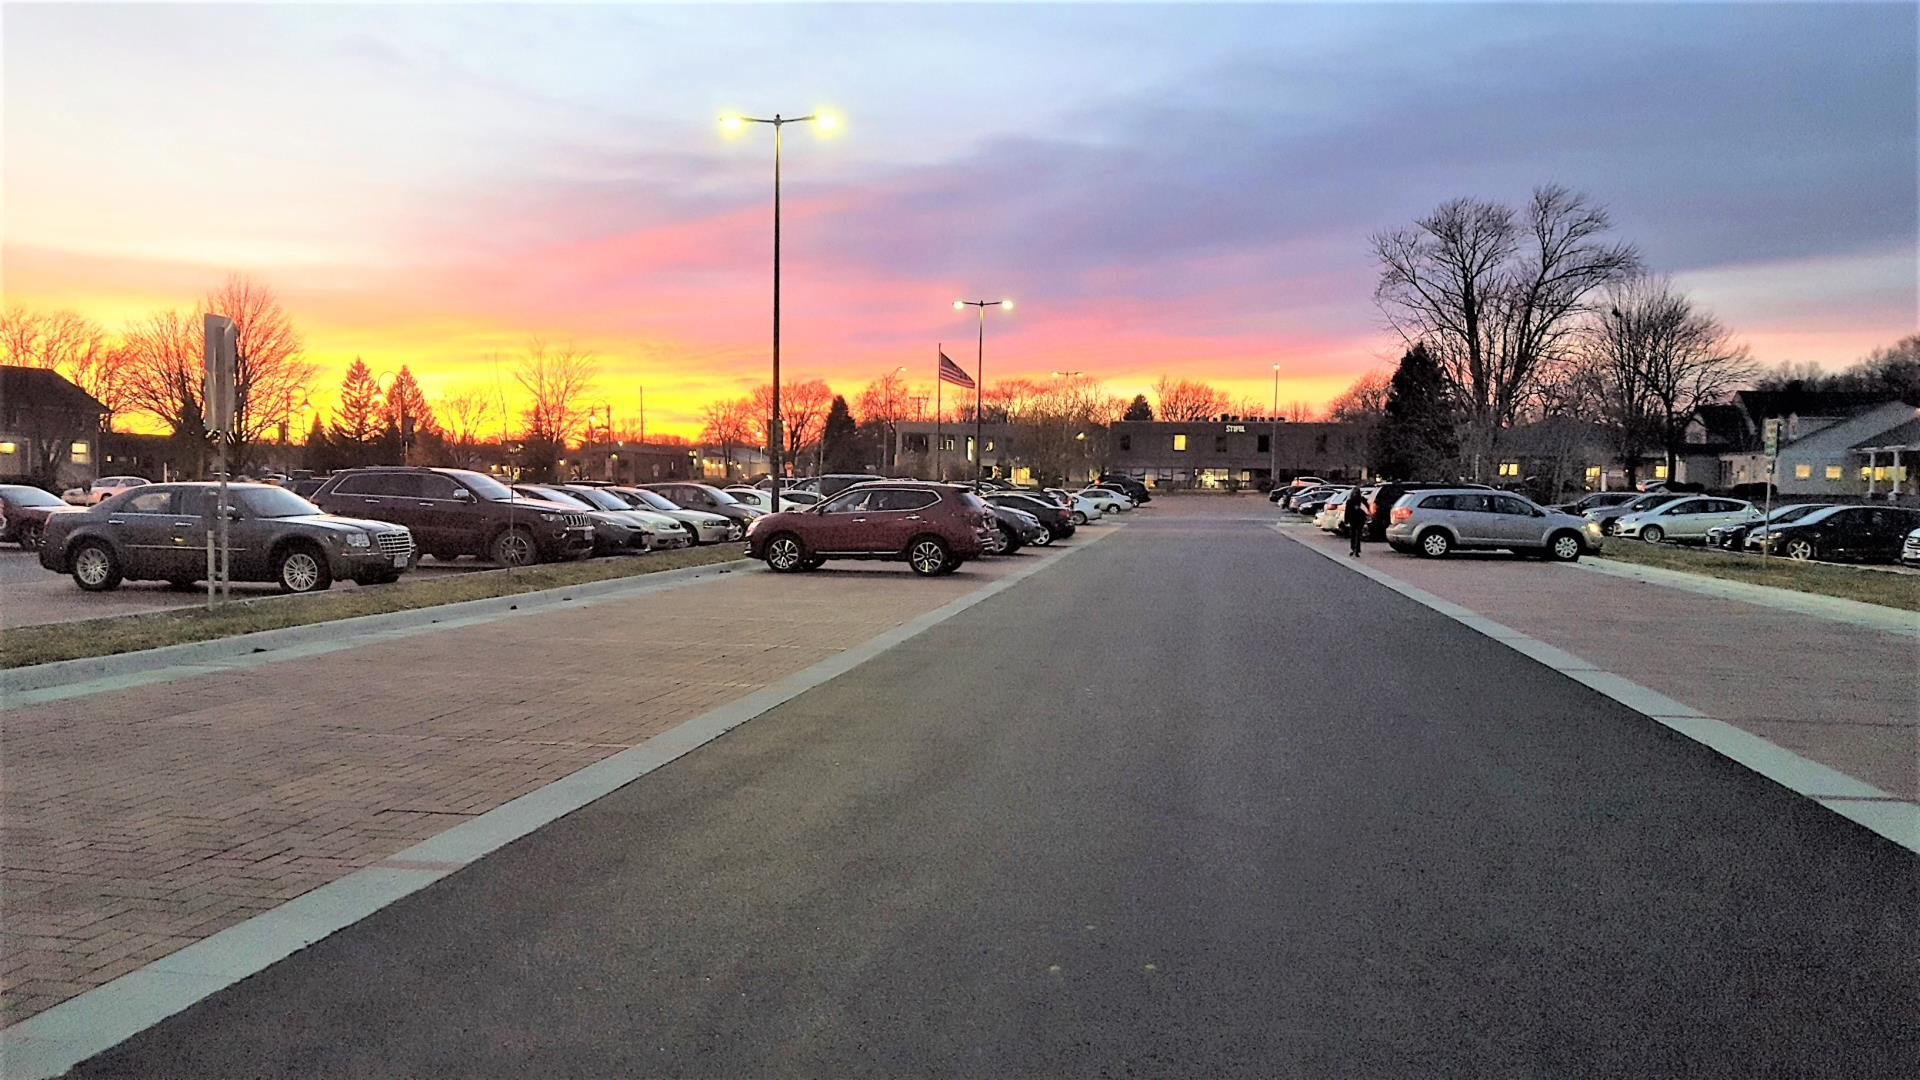 City Hall parking lot at sunset.